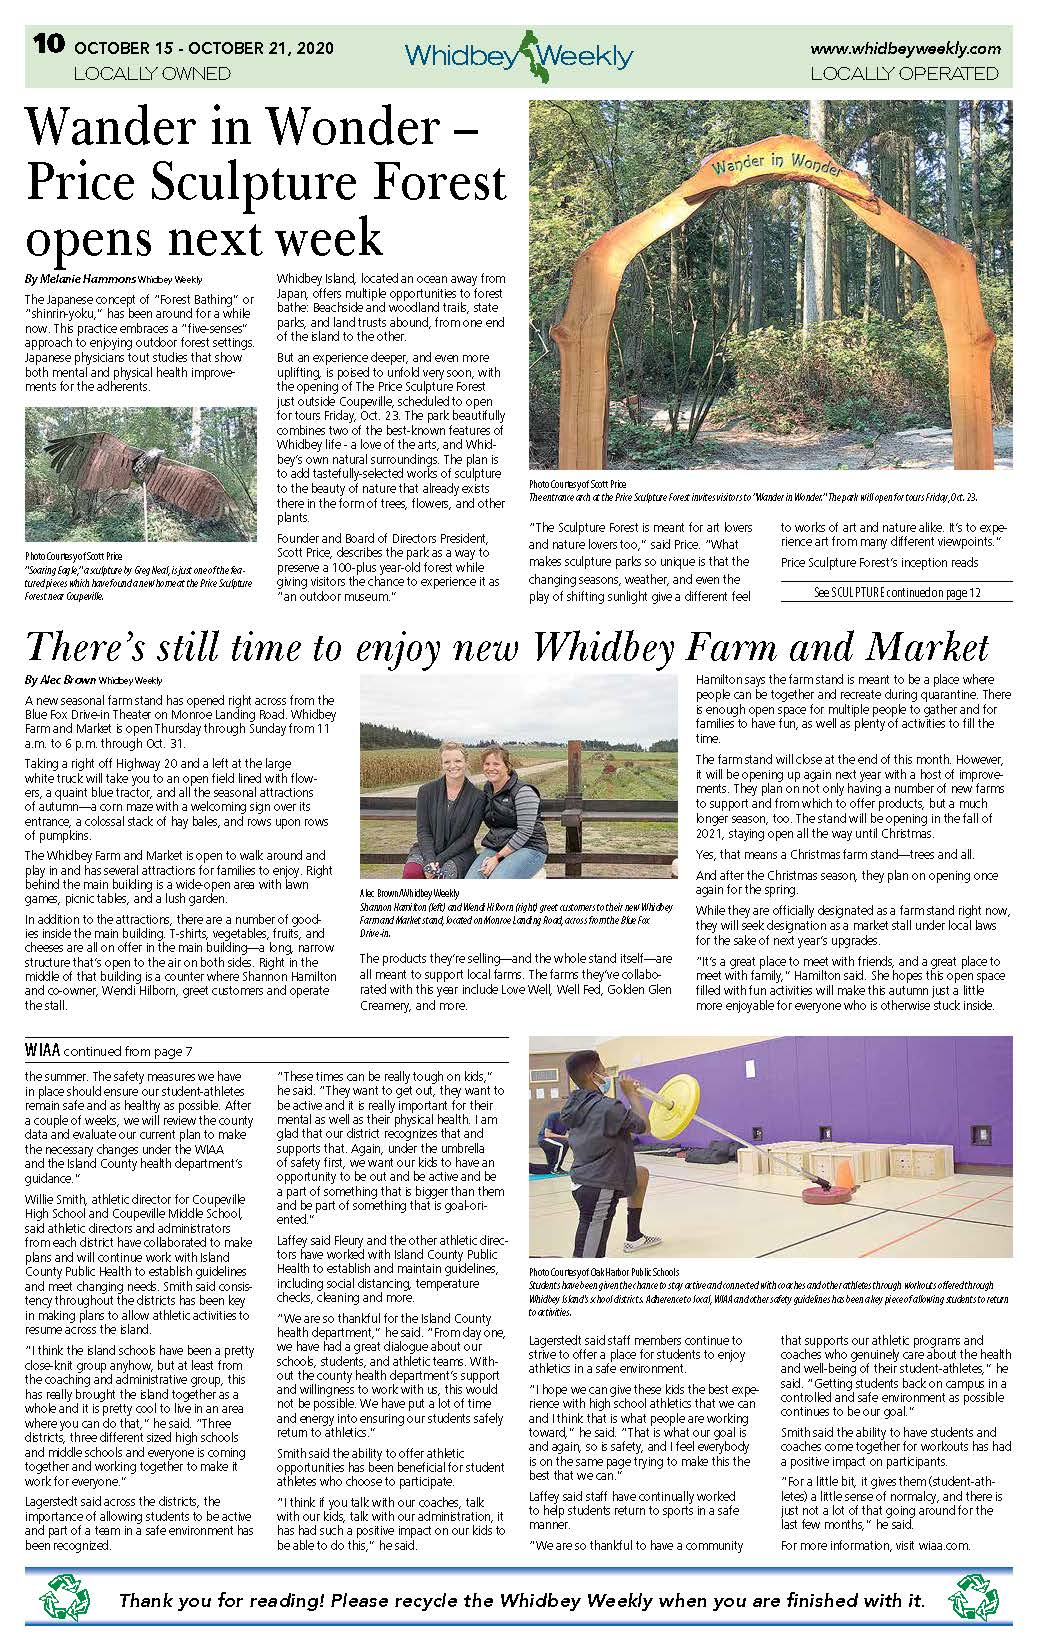 Whidbey Weekly article about Price Sculpture Forest page 1